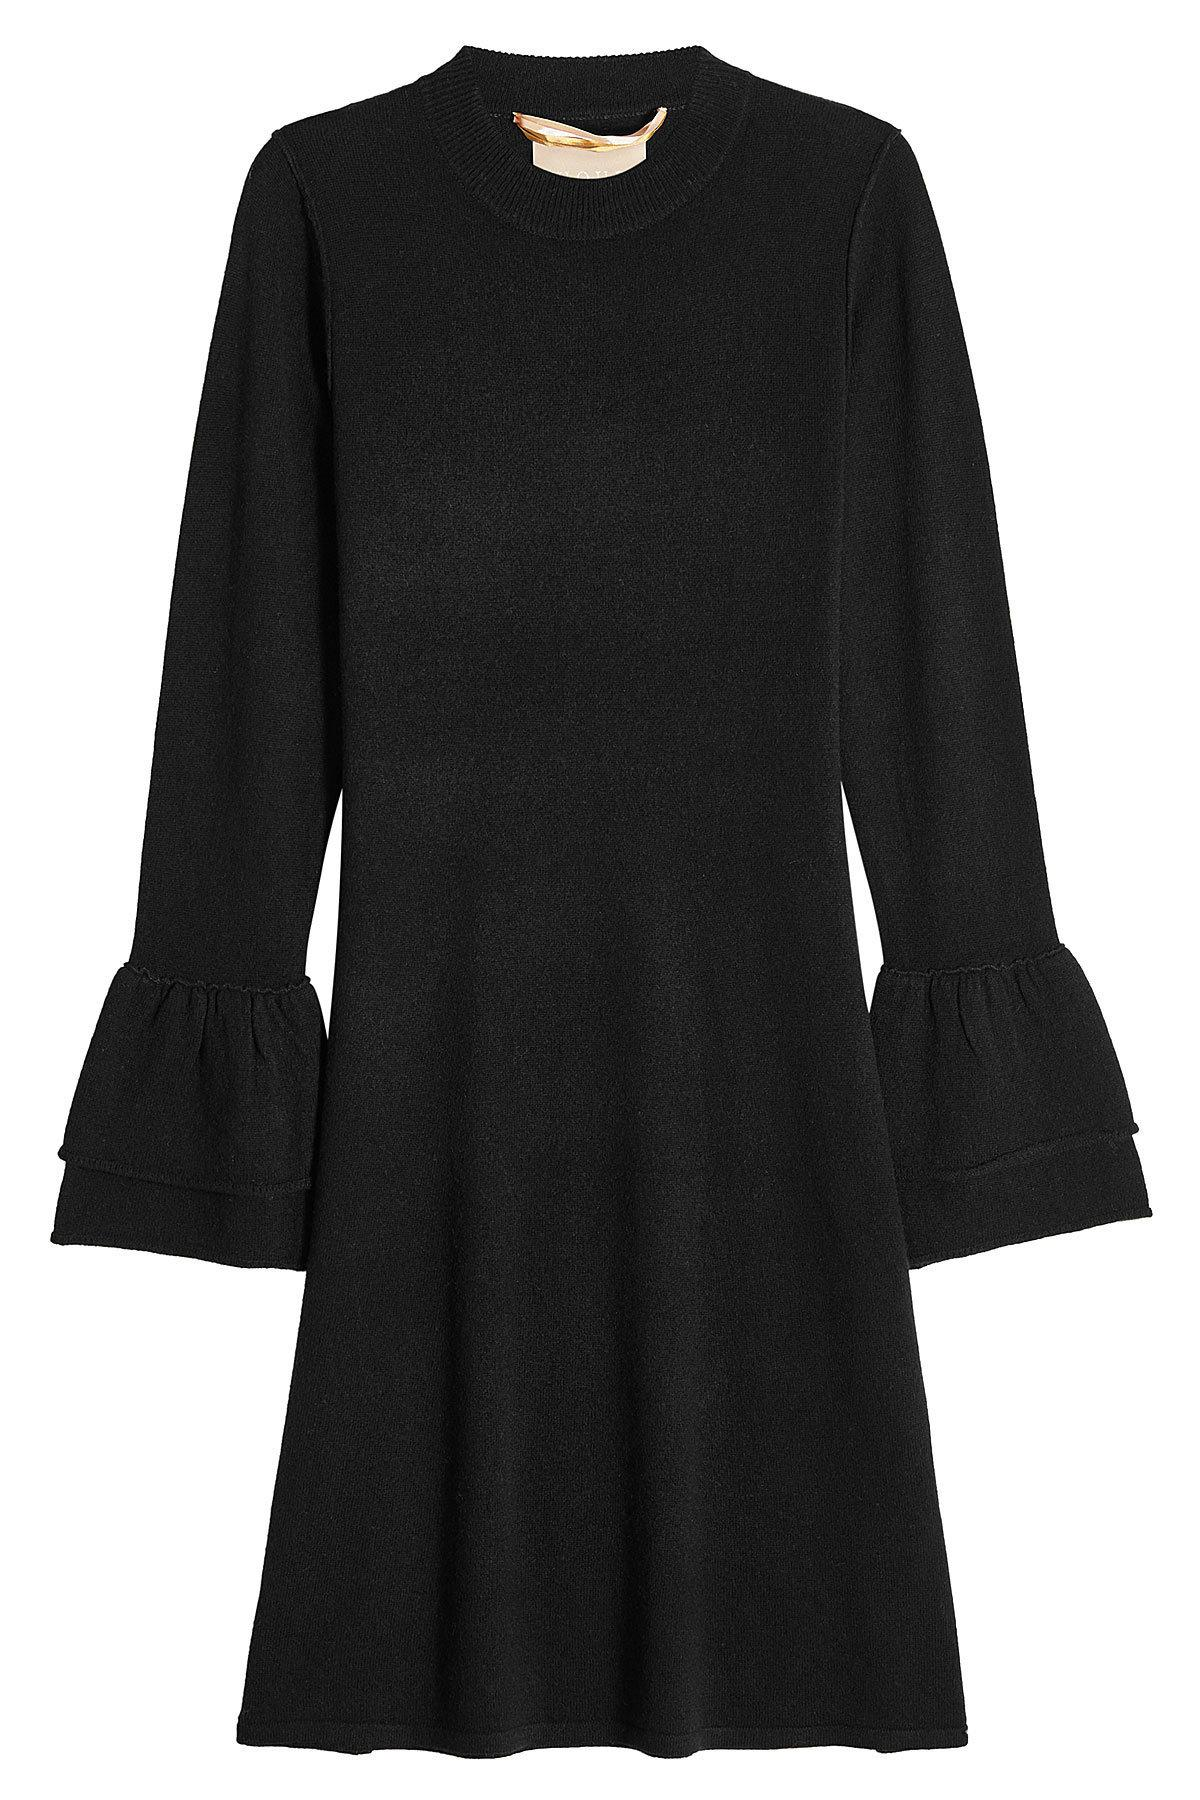 81Hours Hada Dress In Wool And Cashmere in Black - Lyst 4ac38bbf3